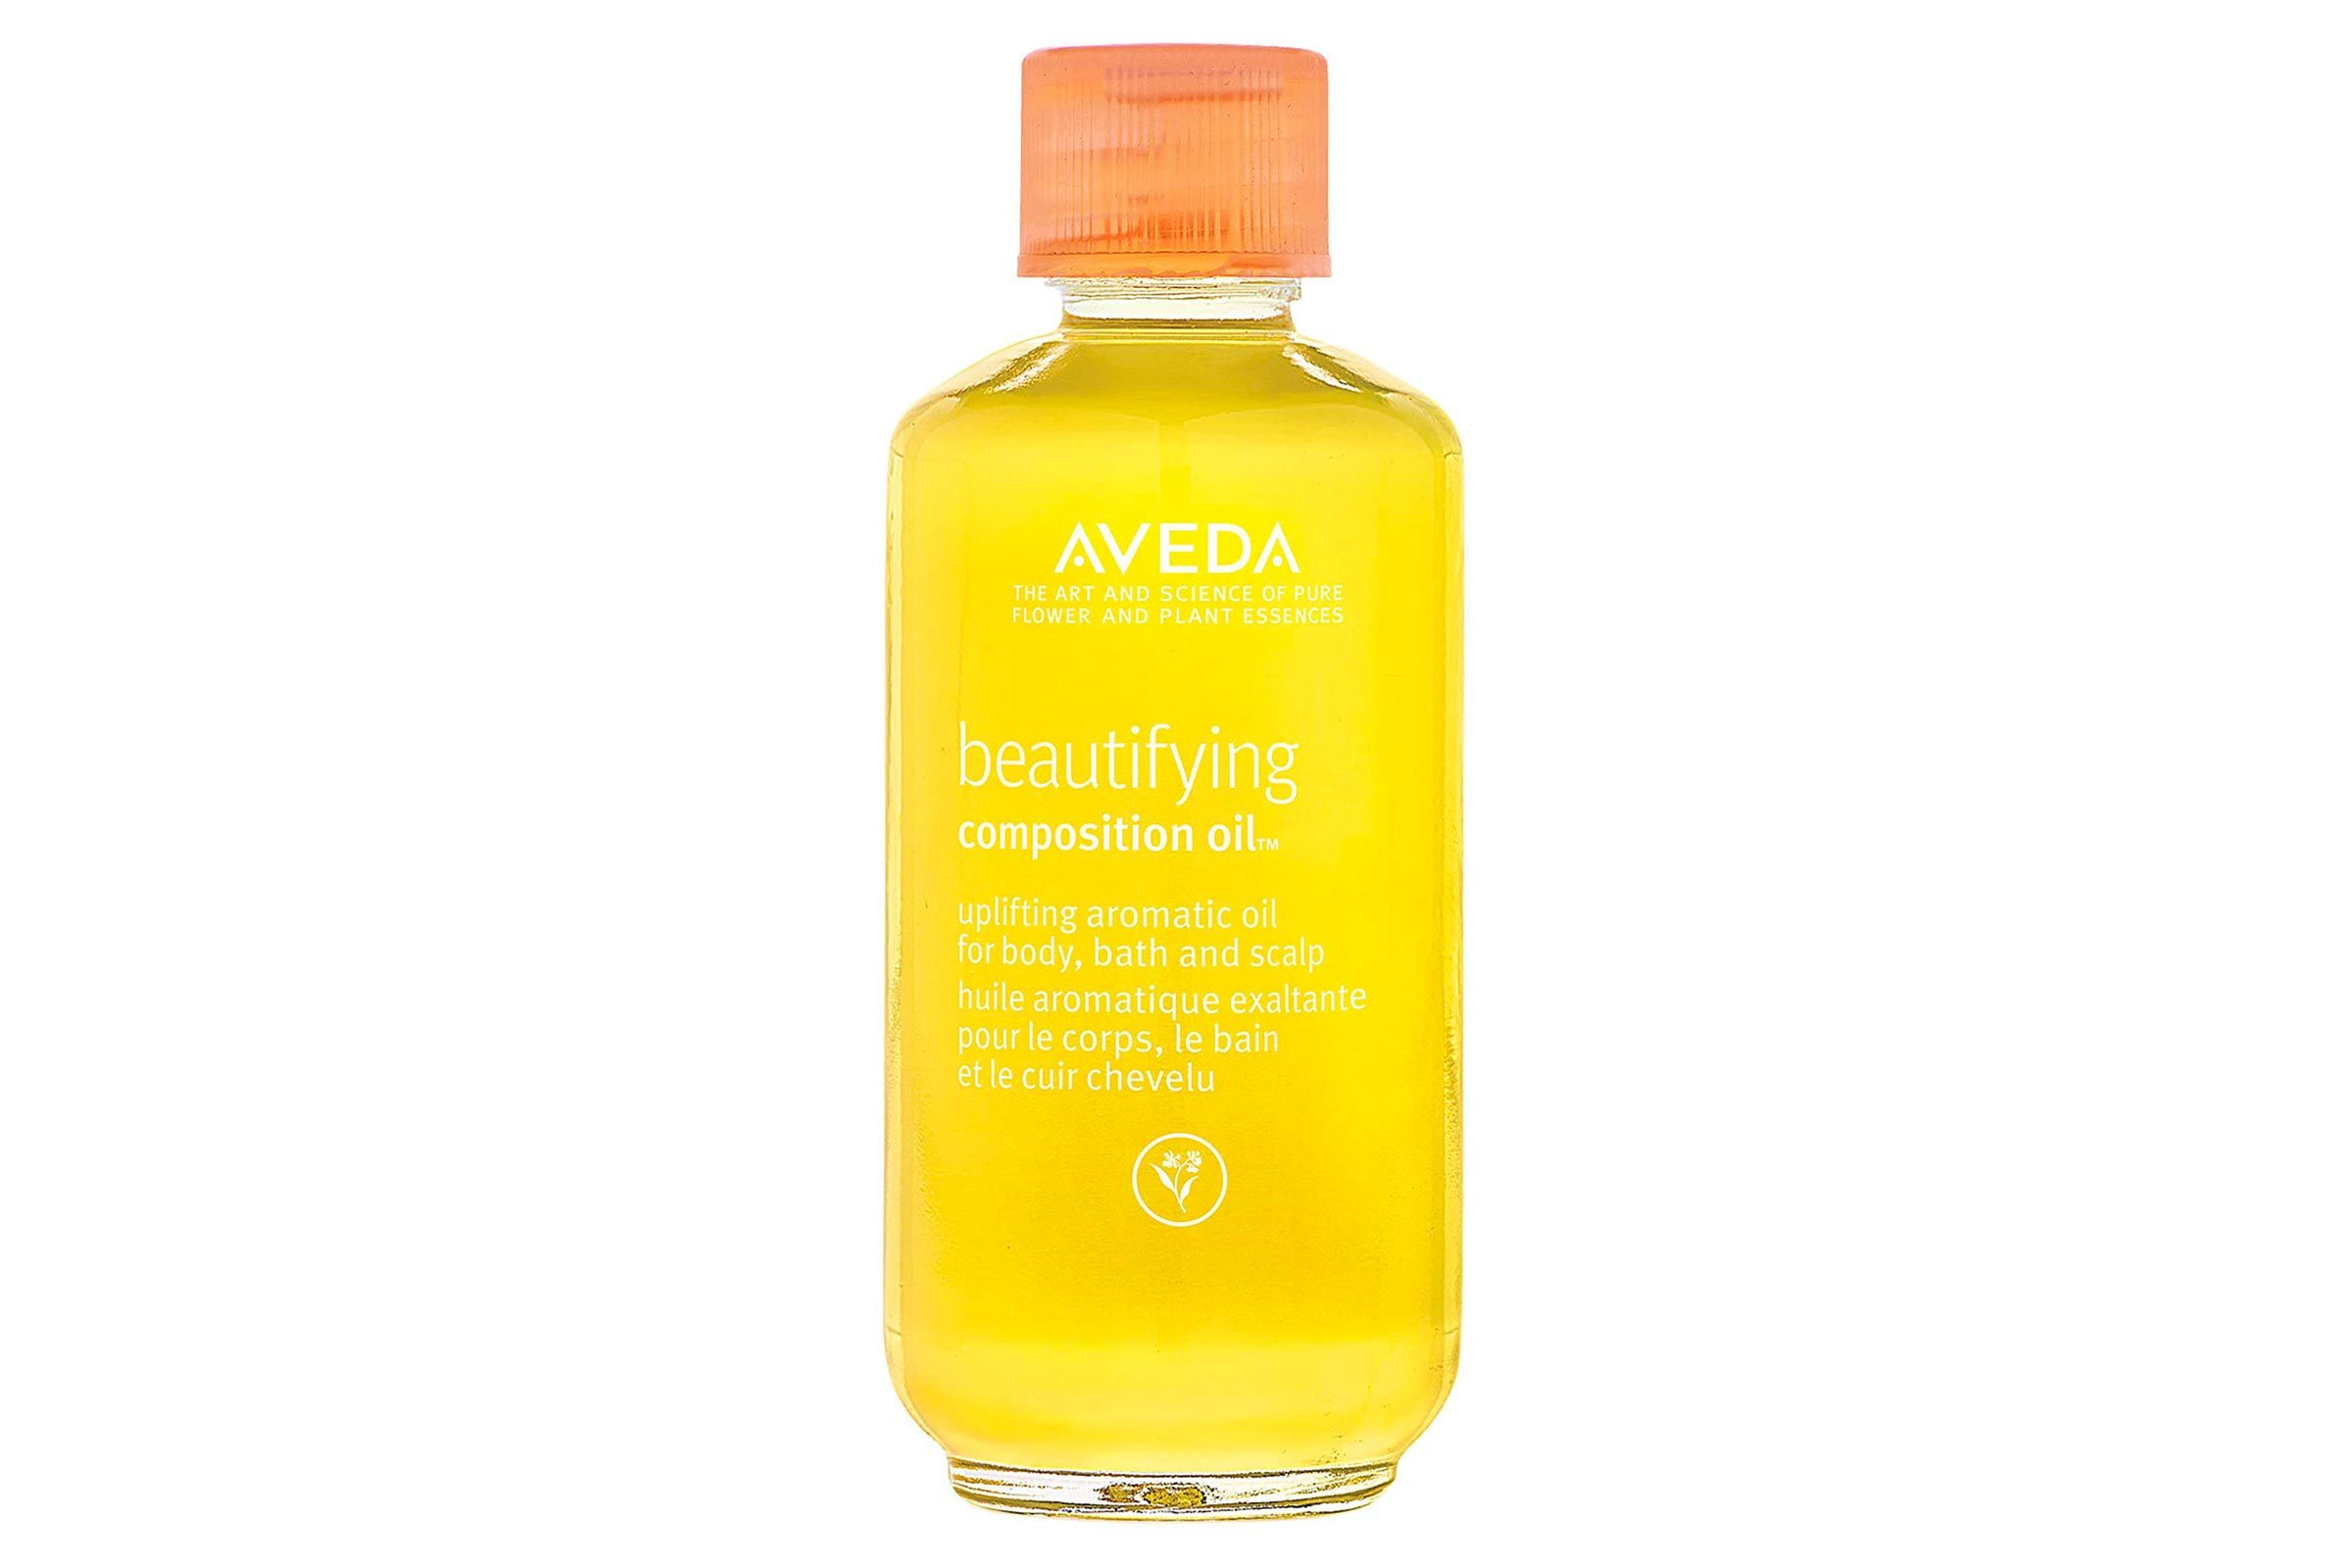 Aveda moisturizing oil